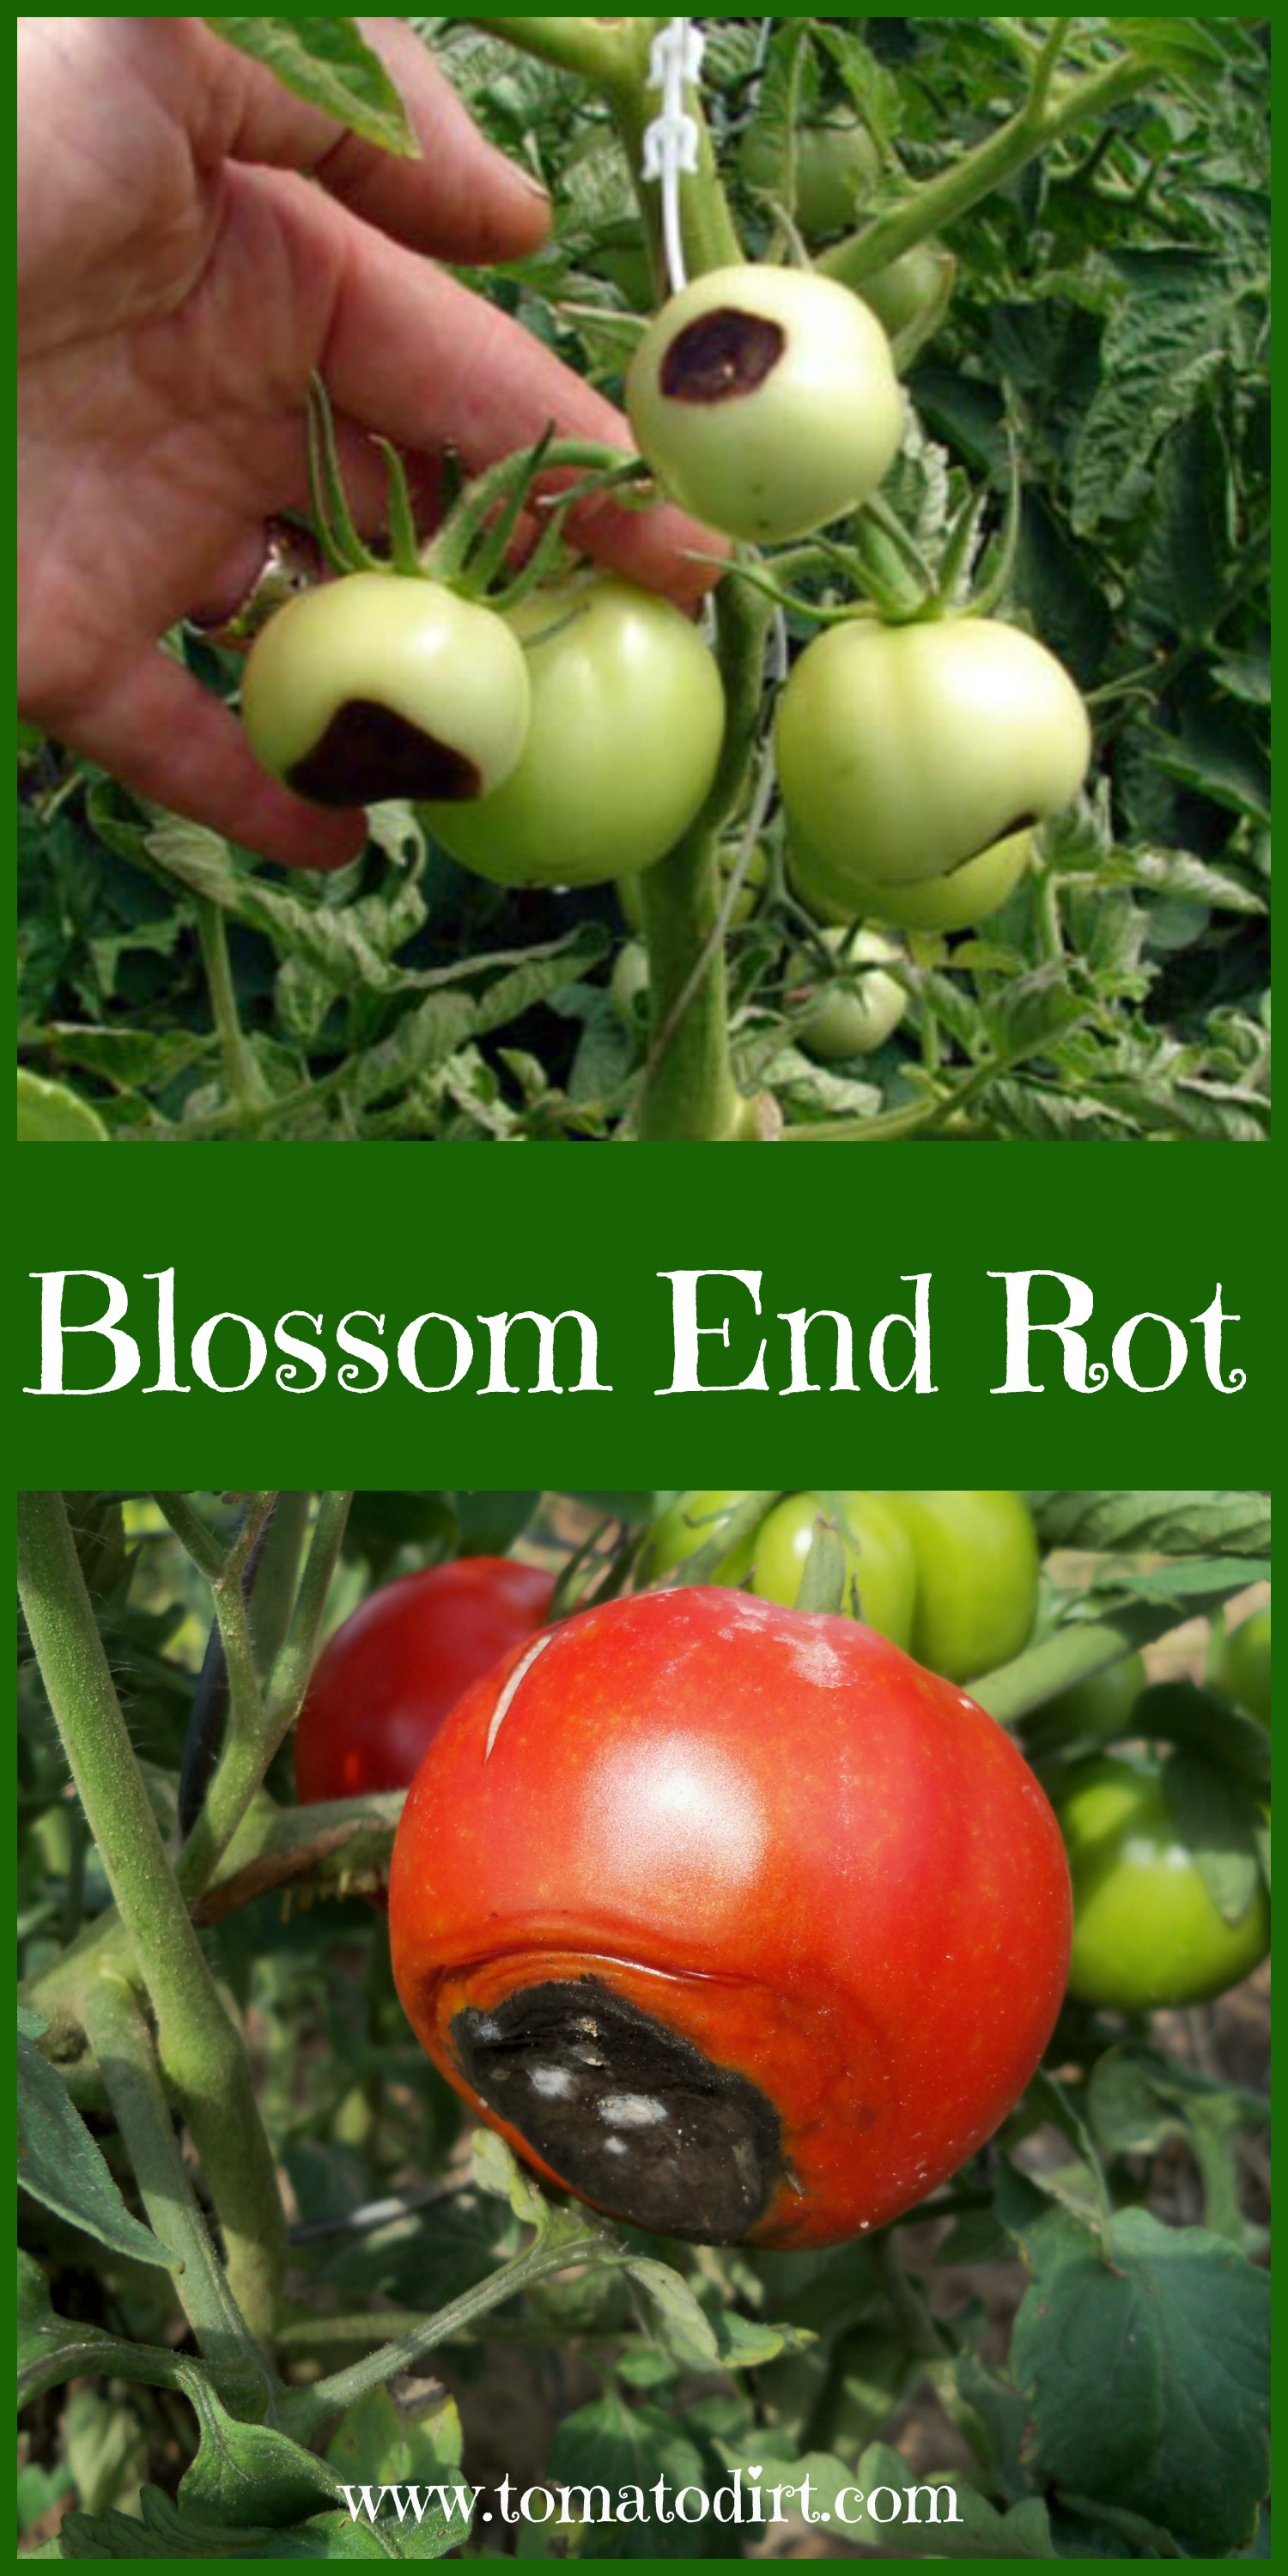 Blossom End Rot with Tomato Dirt